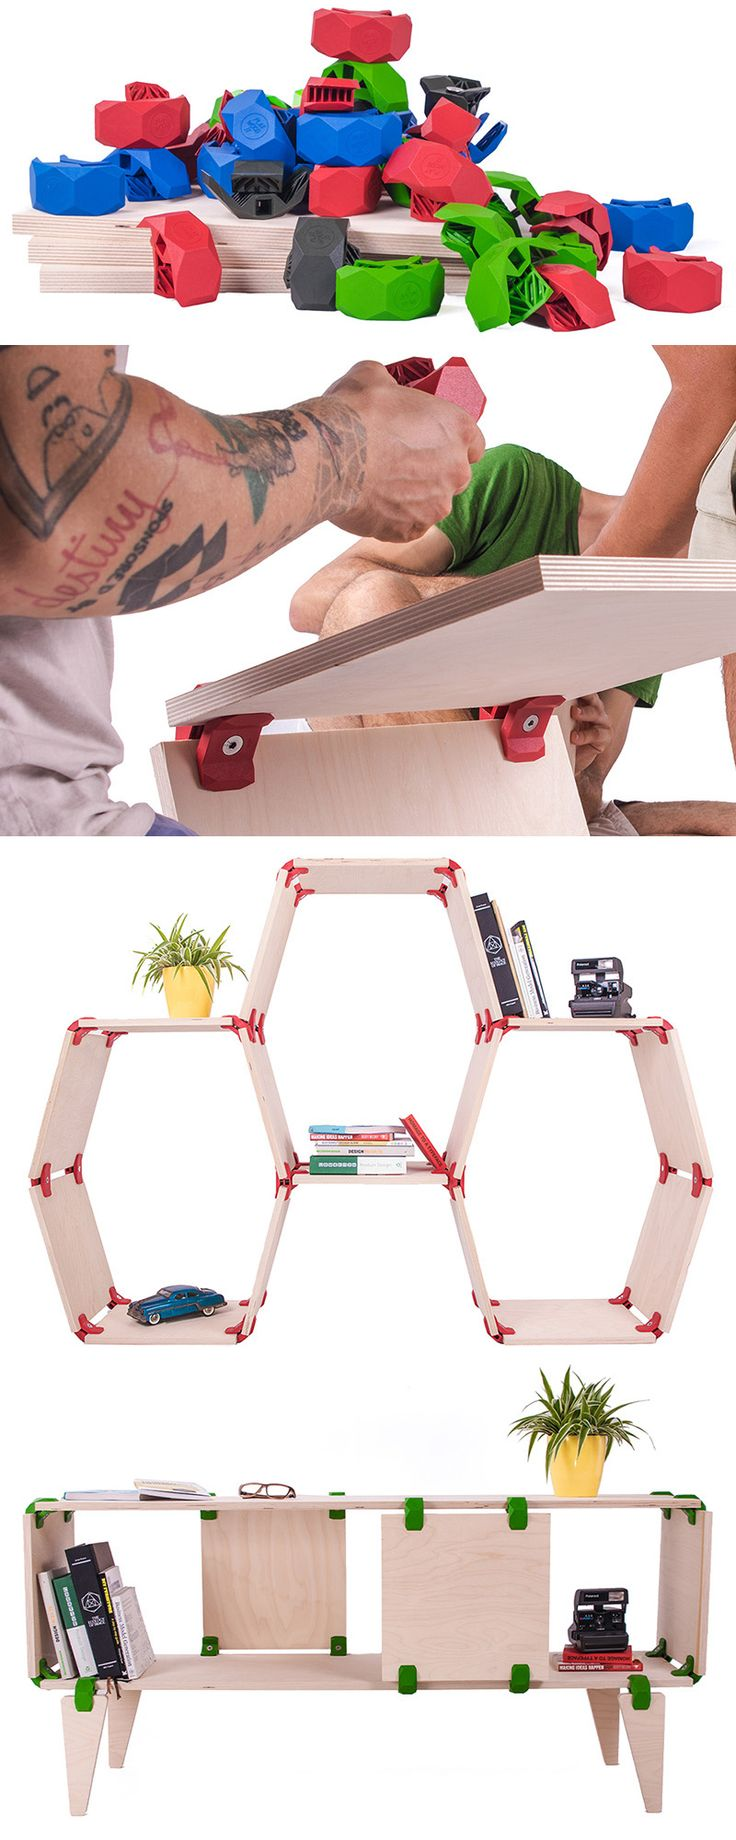 PlayWood Allows You To Create Your Own Furniture Designs /// Created by a team of designers in Italy, PlayWood is a simple connector that allows you to create your own modular furniture.